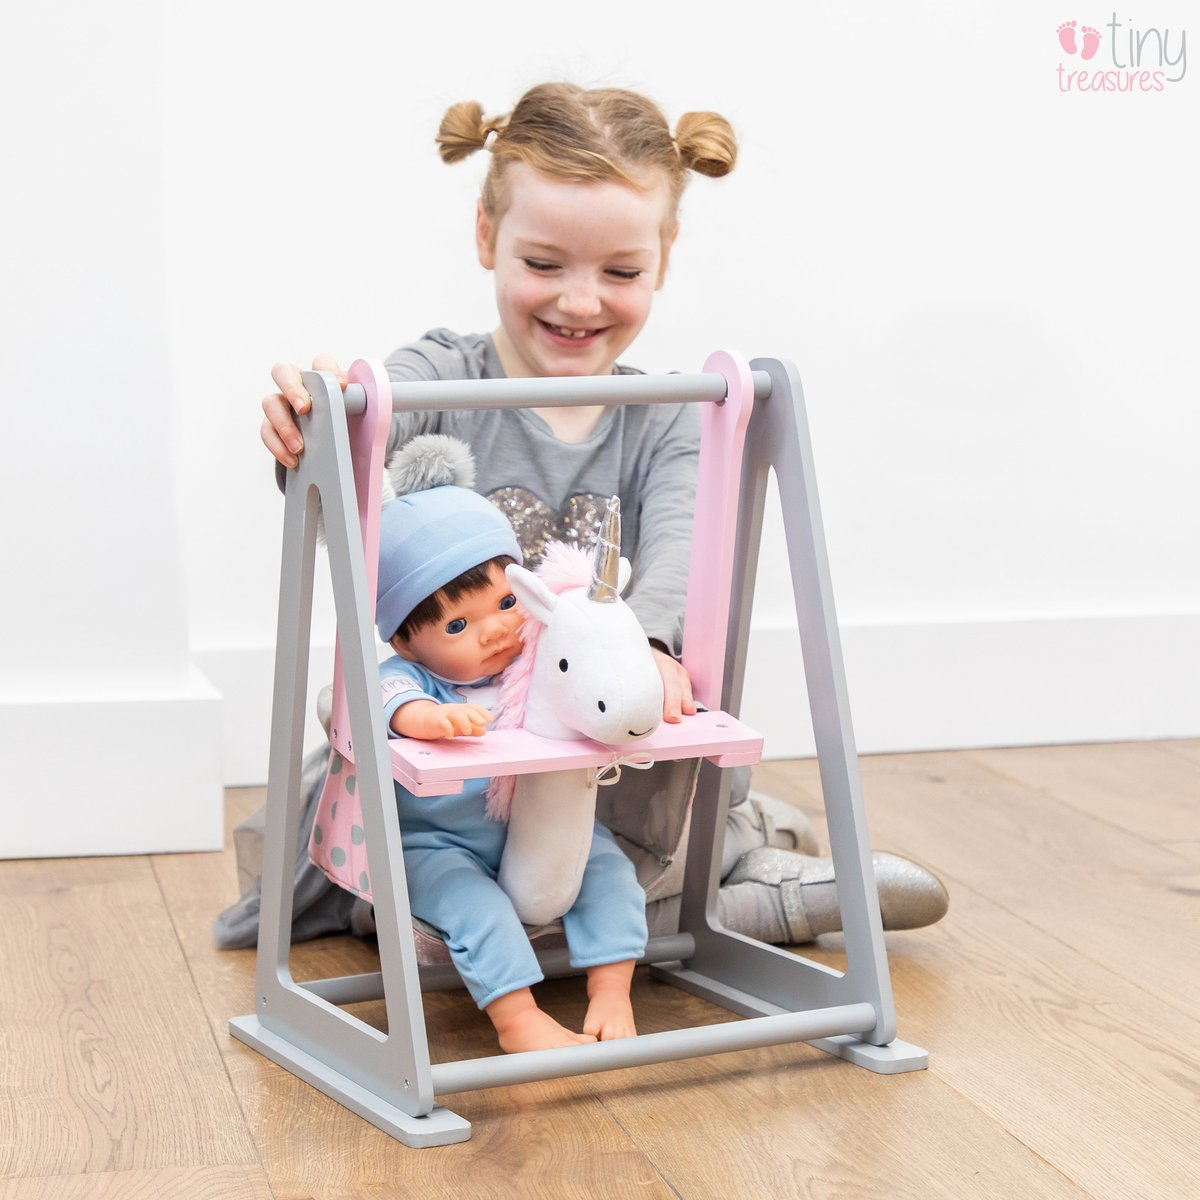 It's playtime! Your little Tiny Treasures baby doll can have so much fun in this wooden unicorn rocker  . . . #reborndolls #newborn #roleplay #newbornphotography #tinytreasures #newbornphotoshoot #rebornbaby #dollstagram #dolls #babies #unicorns #unicornpic.twitter.com/g6qmRSlQaY